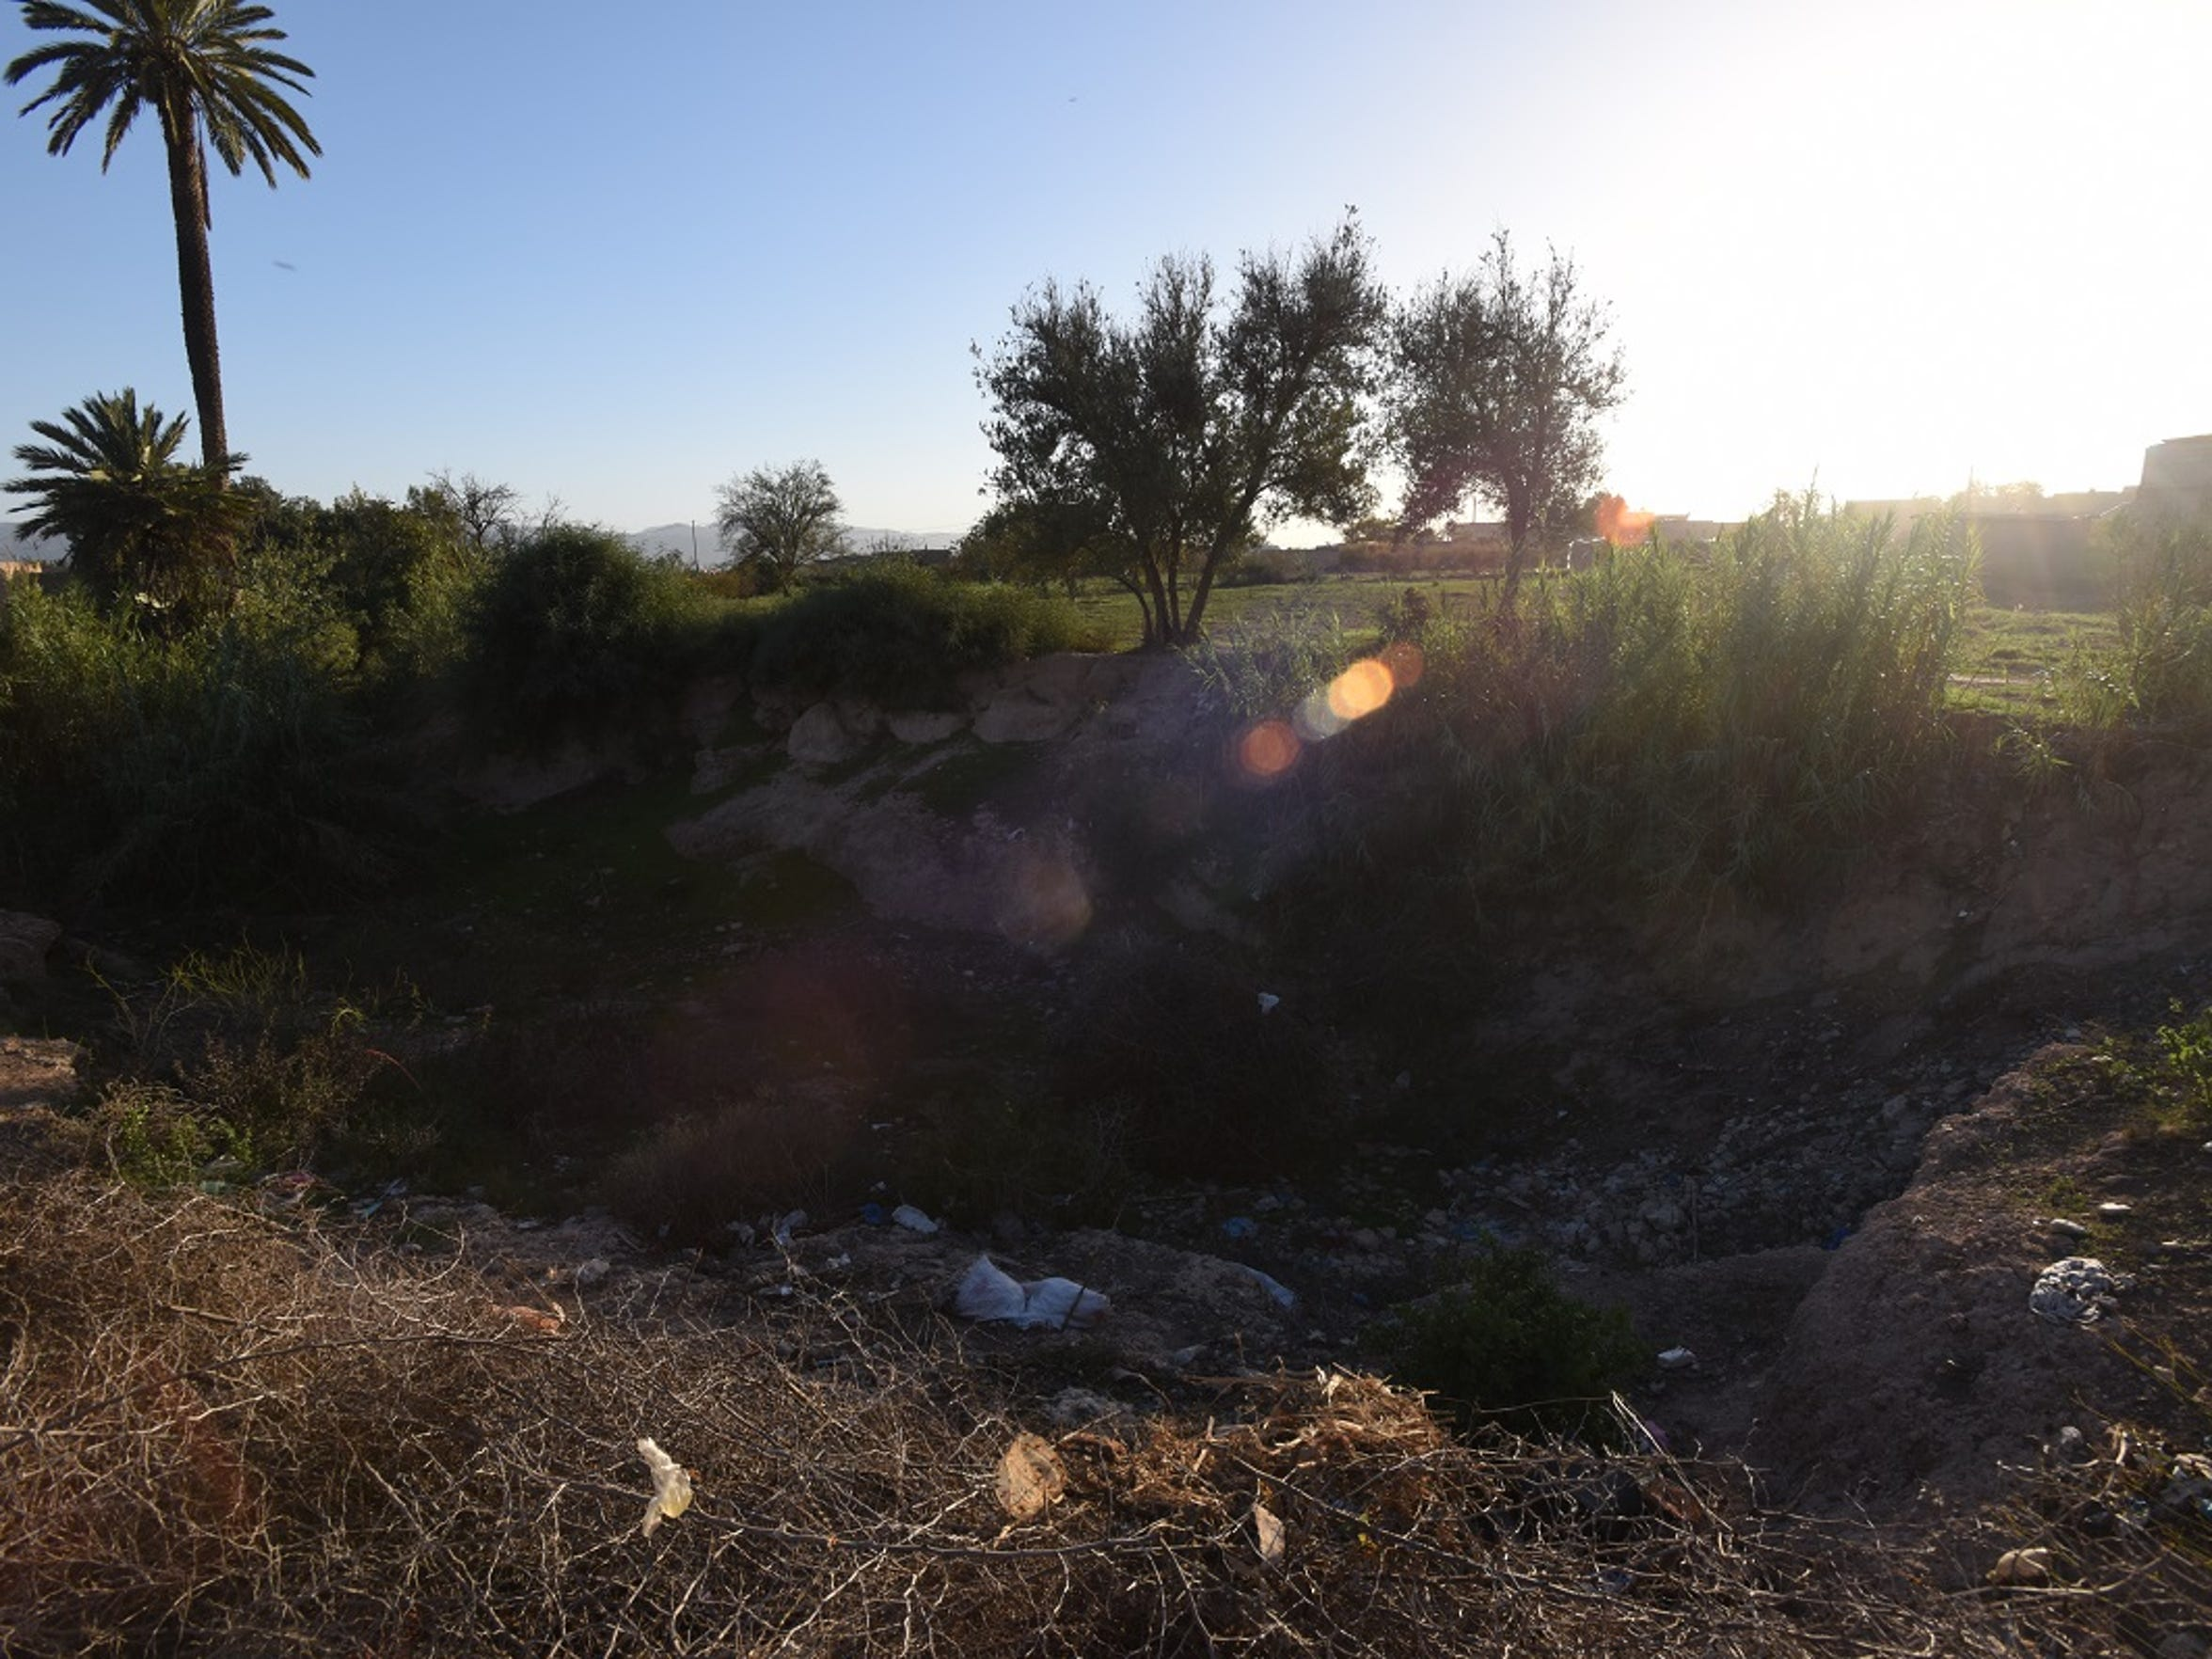 Some springs that once sustained farming villages are now dry in Morocco's Souss-Massa region. In a village near the town of Oulad Berhil, a dry spring has become a grassy pit filled with trash. People say it stopped flowing about 15 years ago.